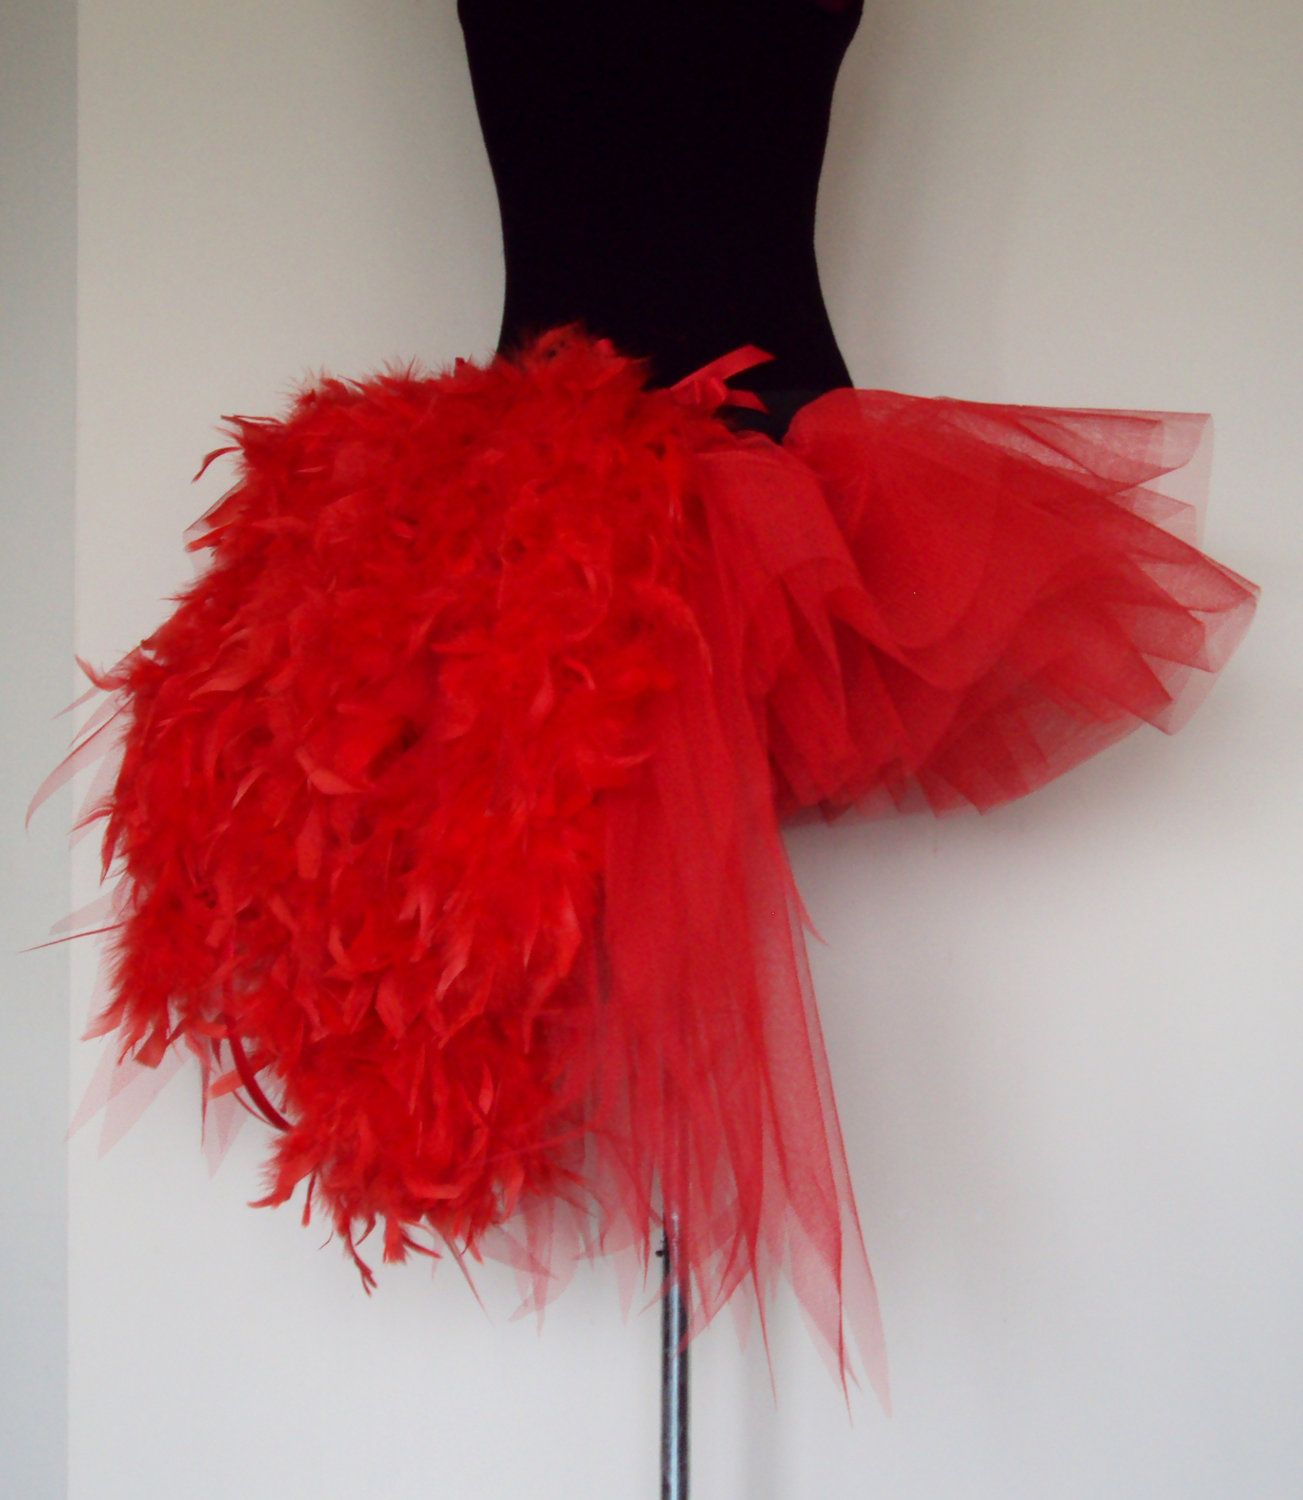 RED Tutu Skirt Burlesque Moulin Rouge Size US 4